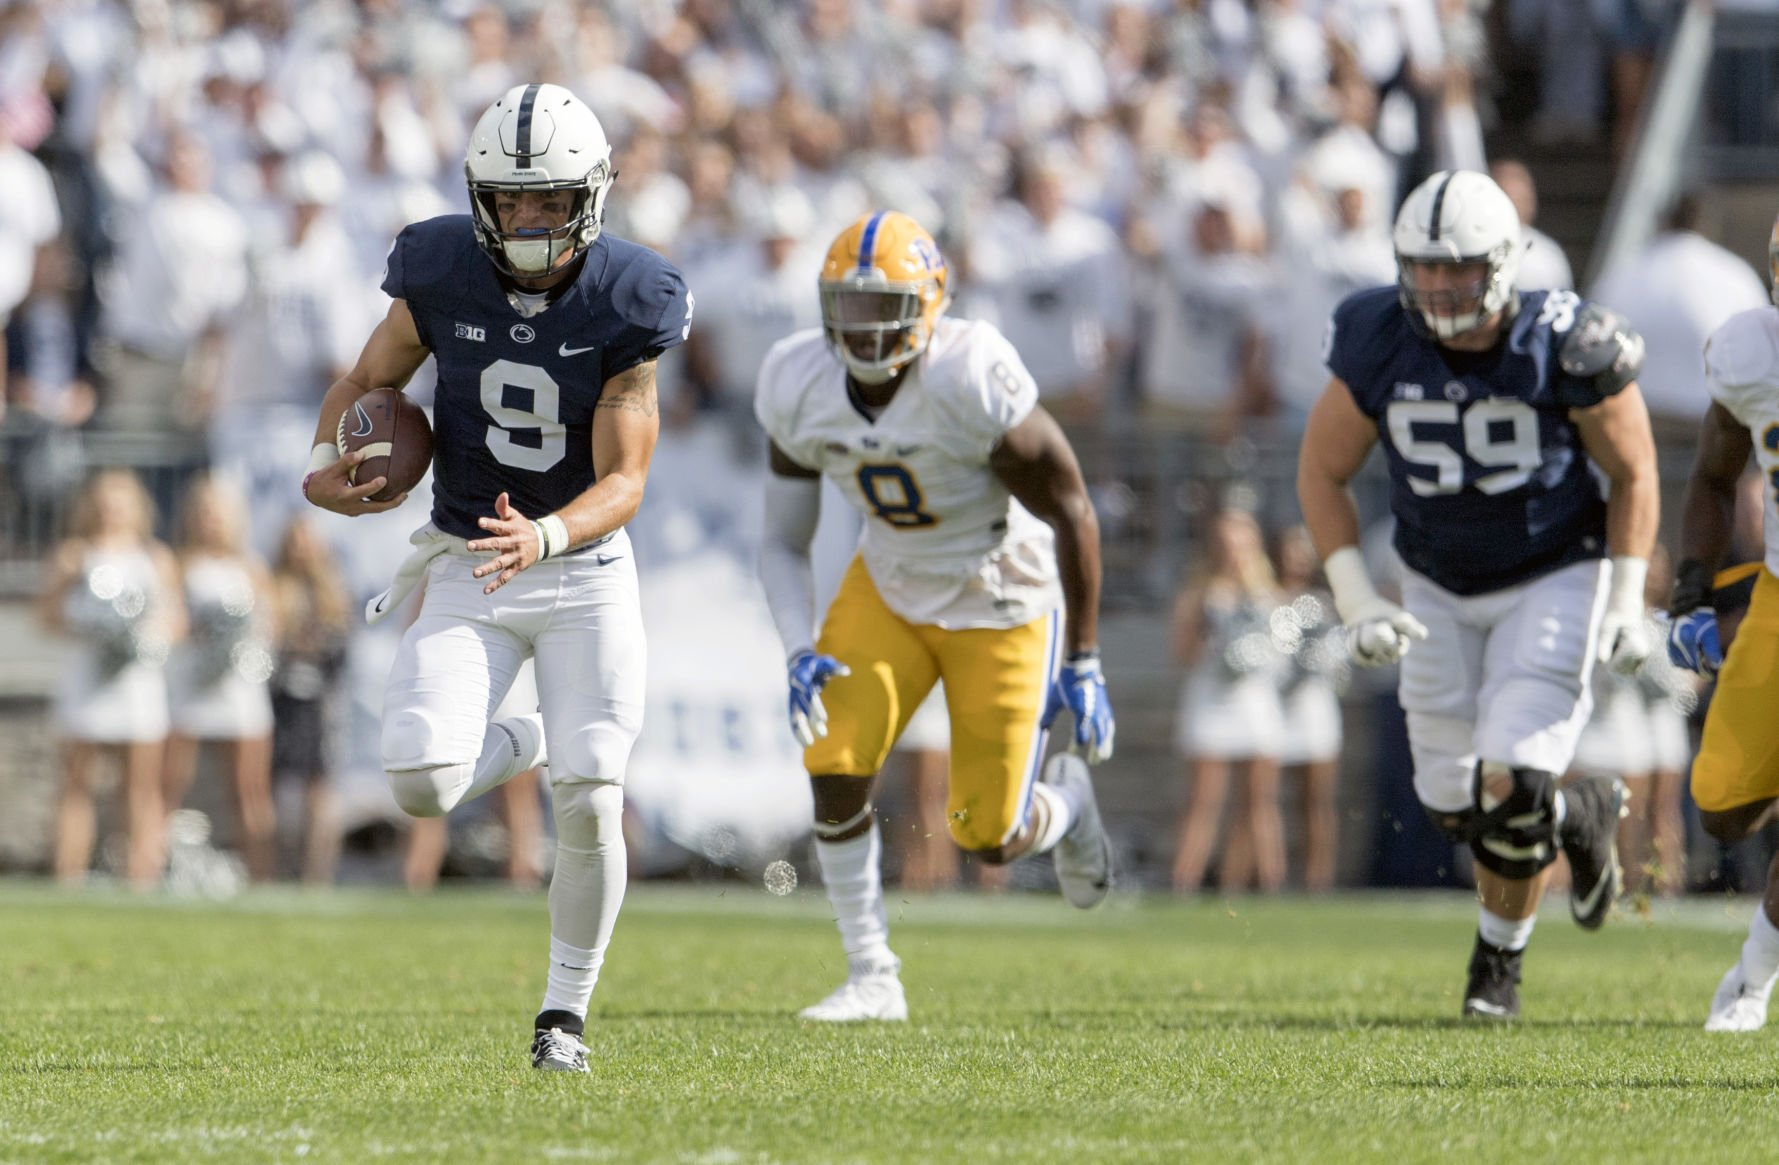 Penn State defeats Iowa with walk-off Trace McSorley touchdown